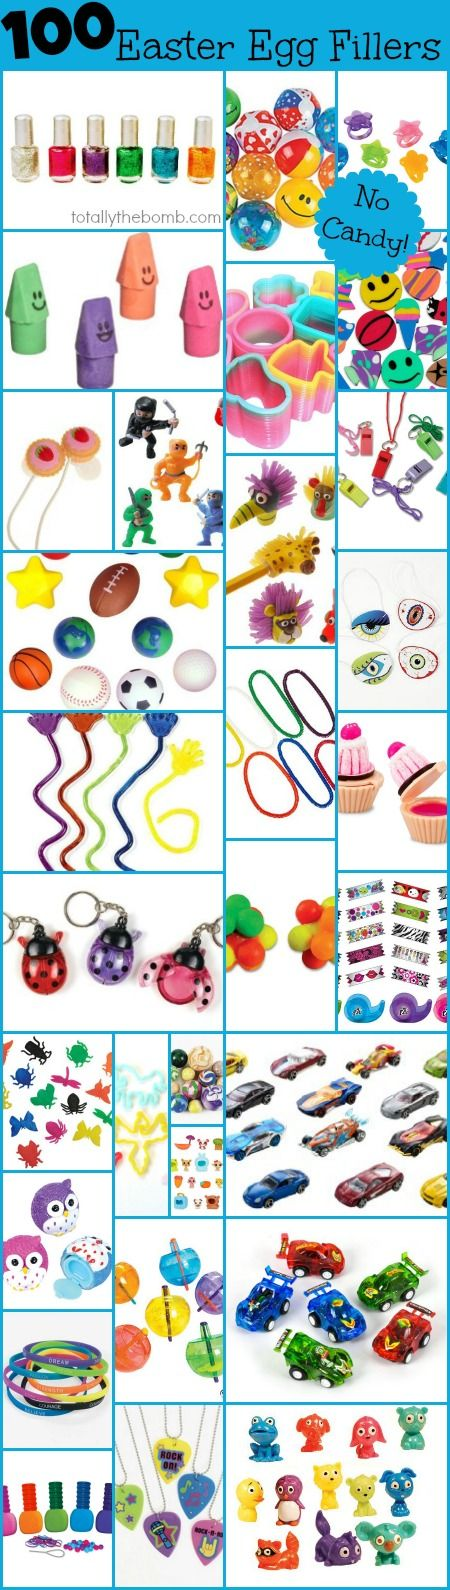 100 Things To Put In Easter Eggs {That Arent Candy!}